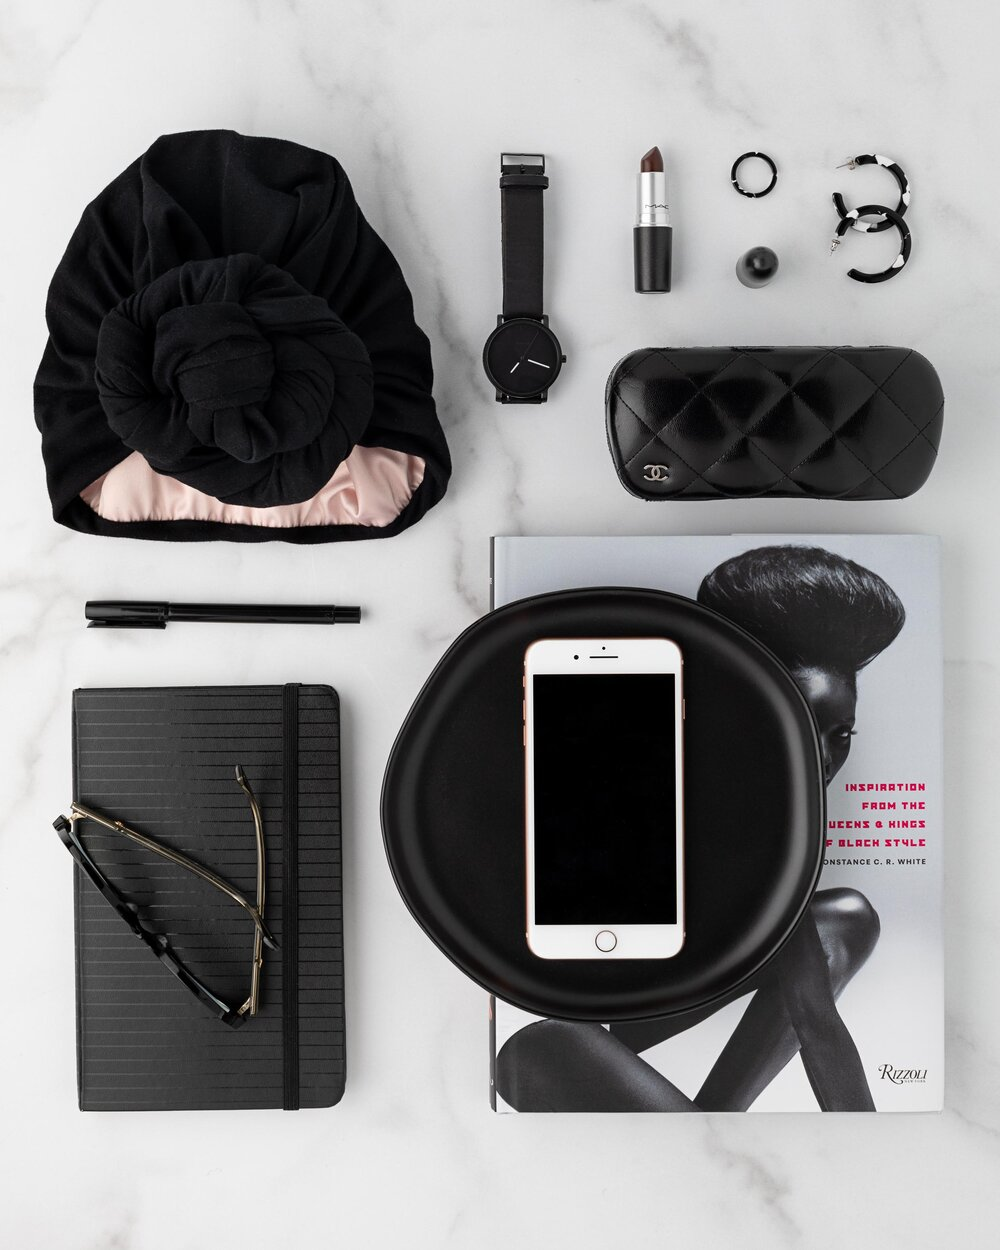 Black and white flat lay knolling image.